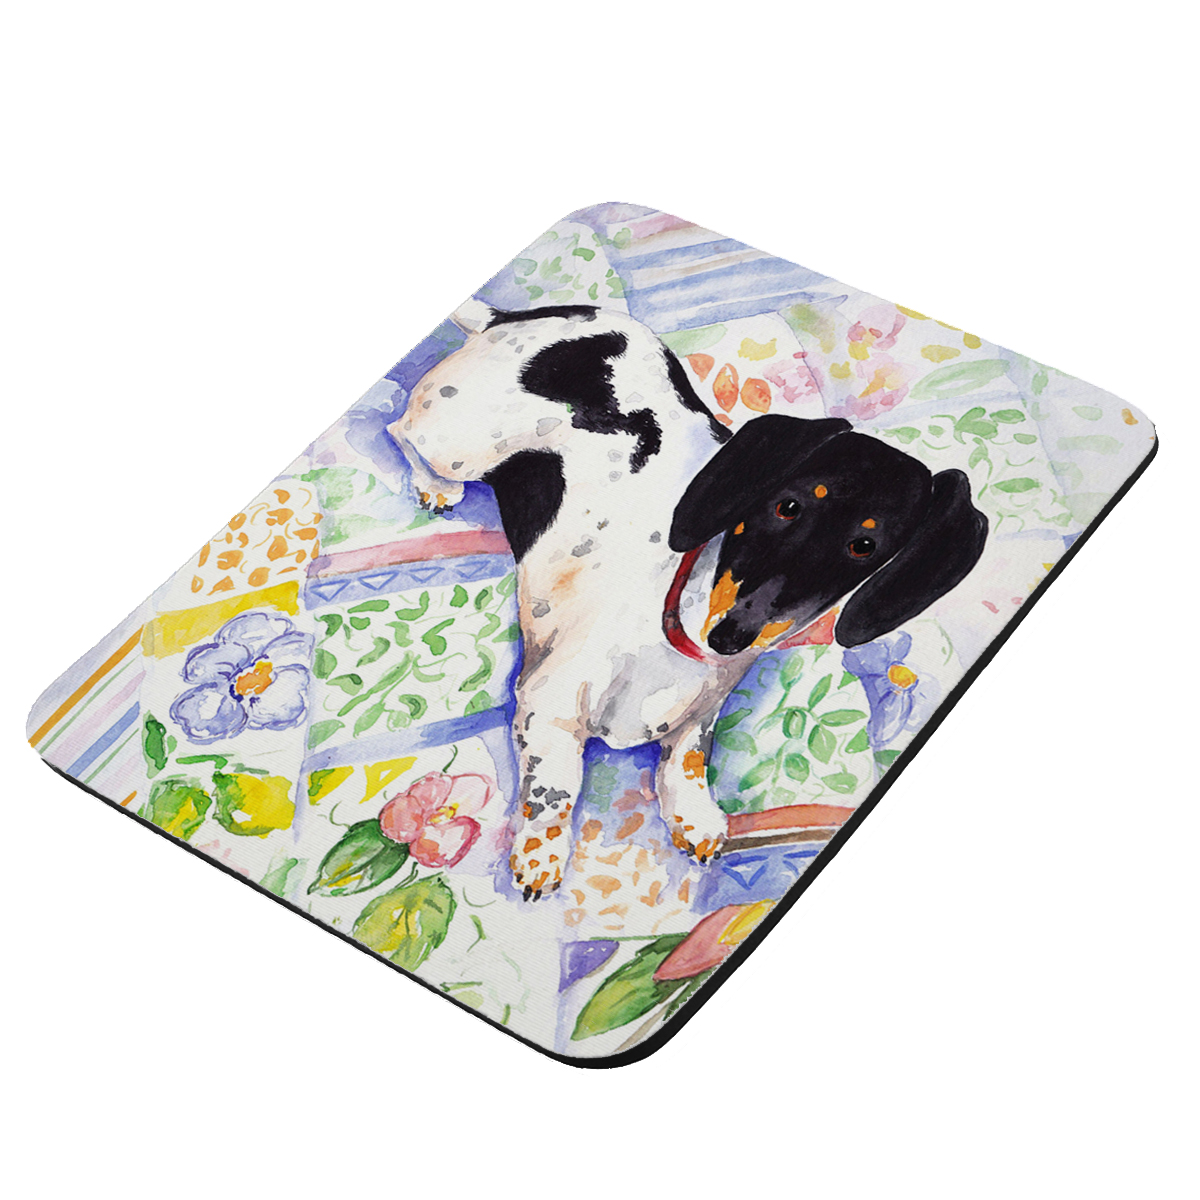 Tricolor Miniature Dachshund Art by Denise Every - KuzmarK Mousepad / Hot Pad / Trivet